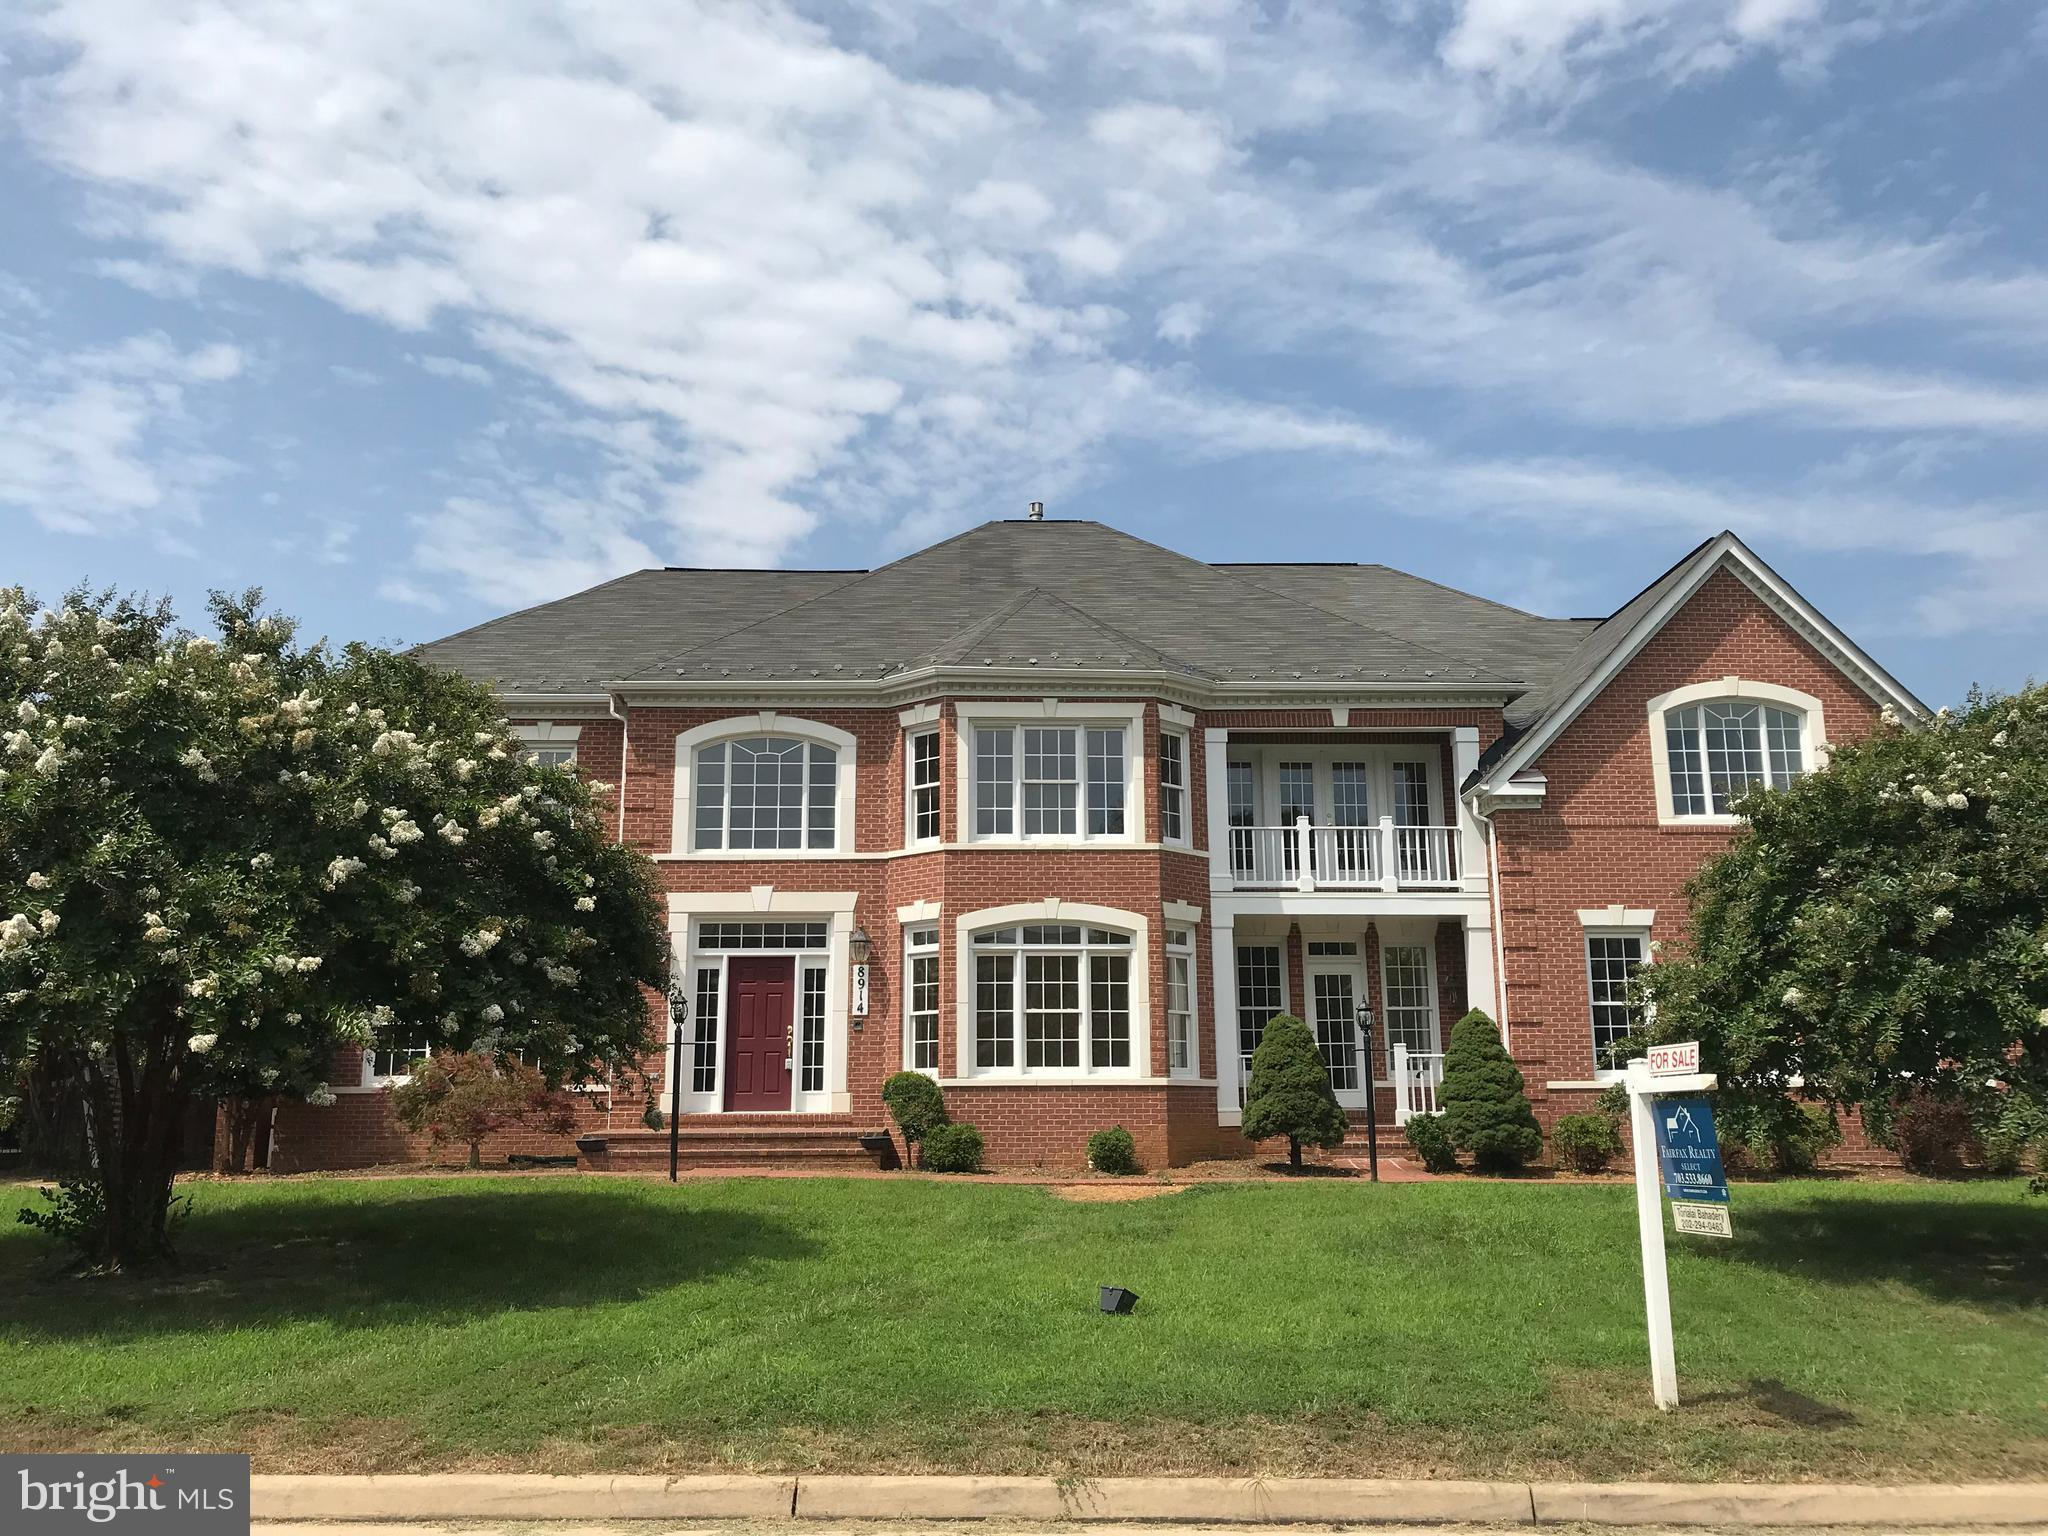 PRICE REDUCED!! Stunning three level colonial on the corner lot in premier Mount Vernon Location. Hardwood floor, SS appliances, Gourmet Kitchen, High ceiling, Fresh paint, New Carpet, Fully finished walkout lower level with installed wet bar. Three car garage, All brick patio. A must see house.